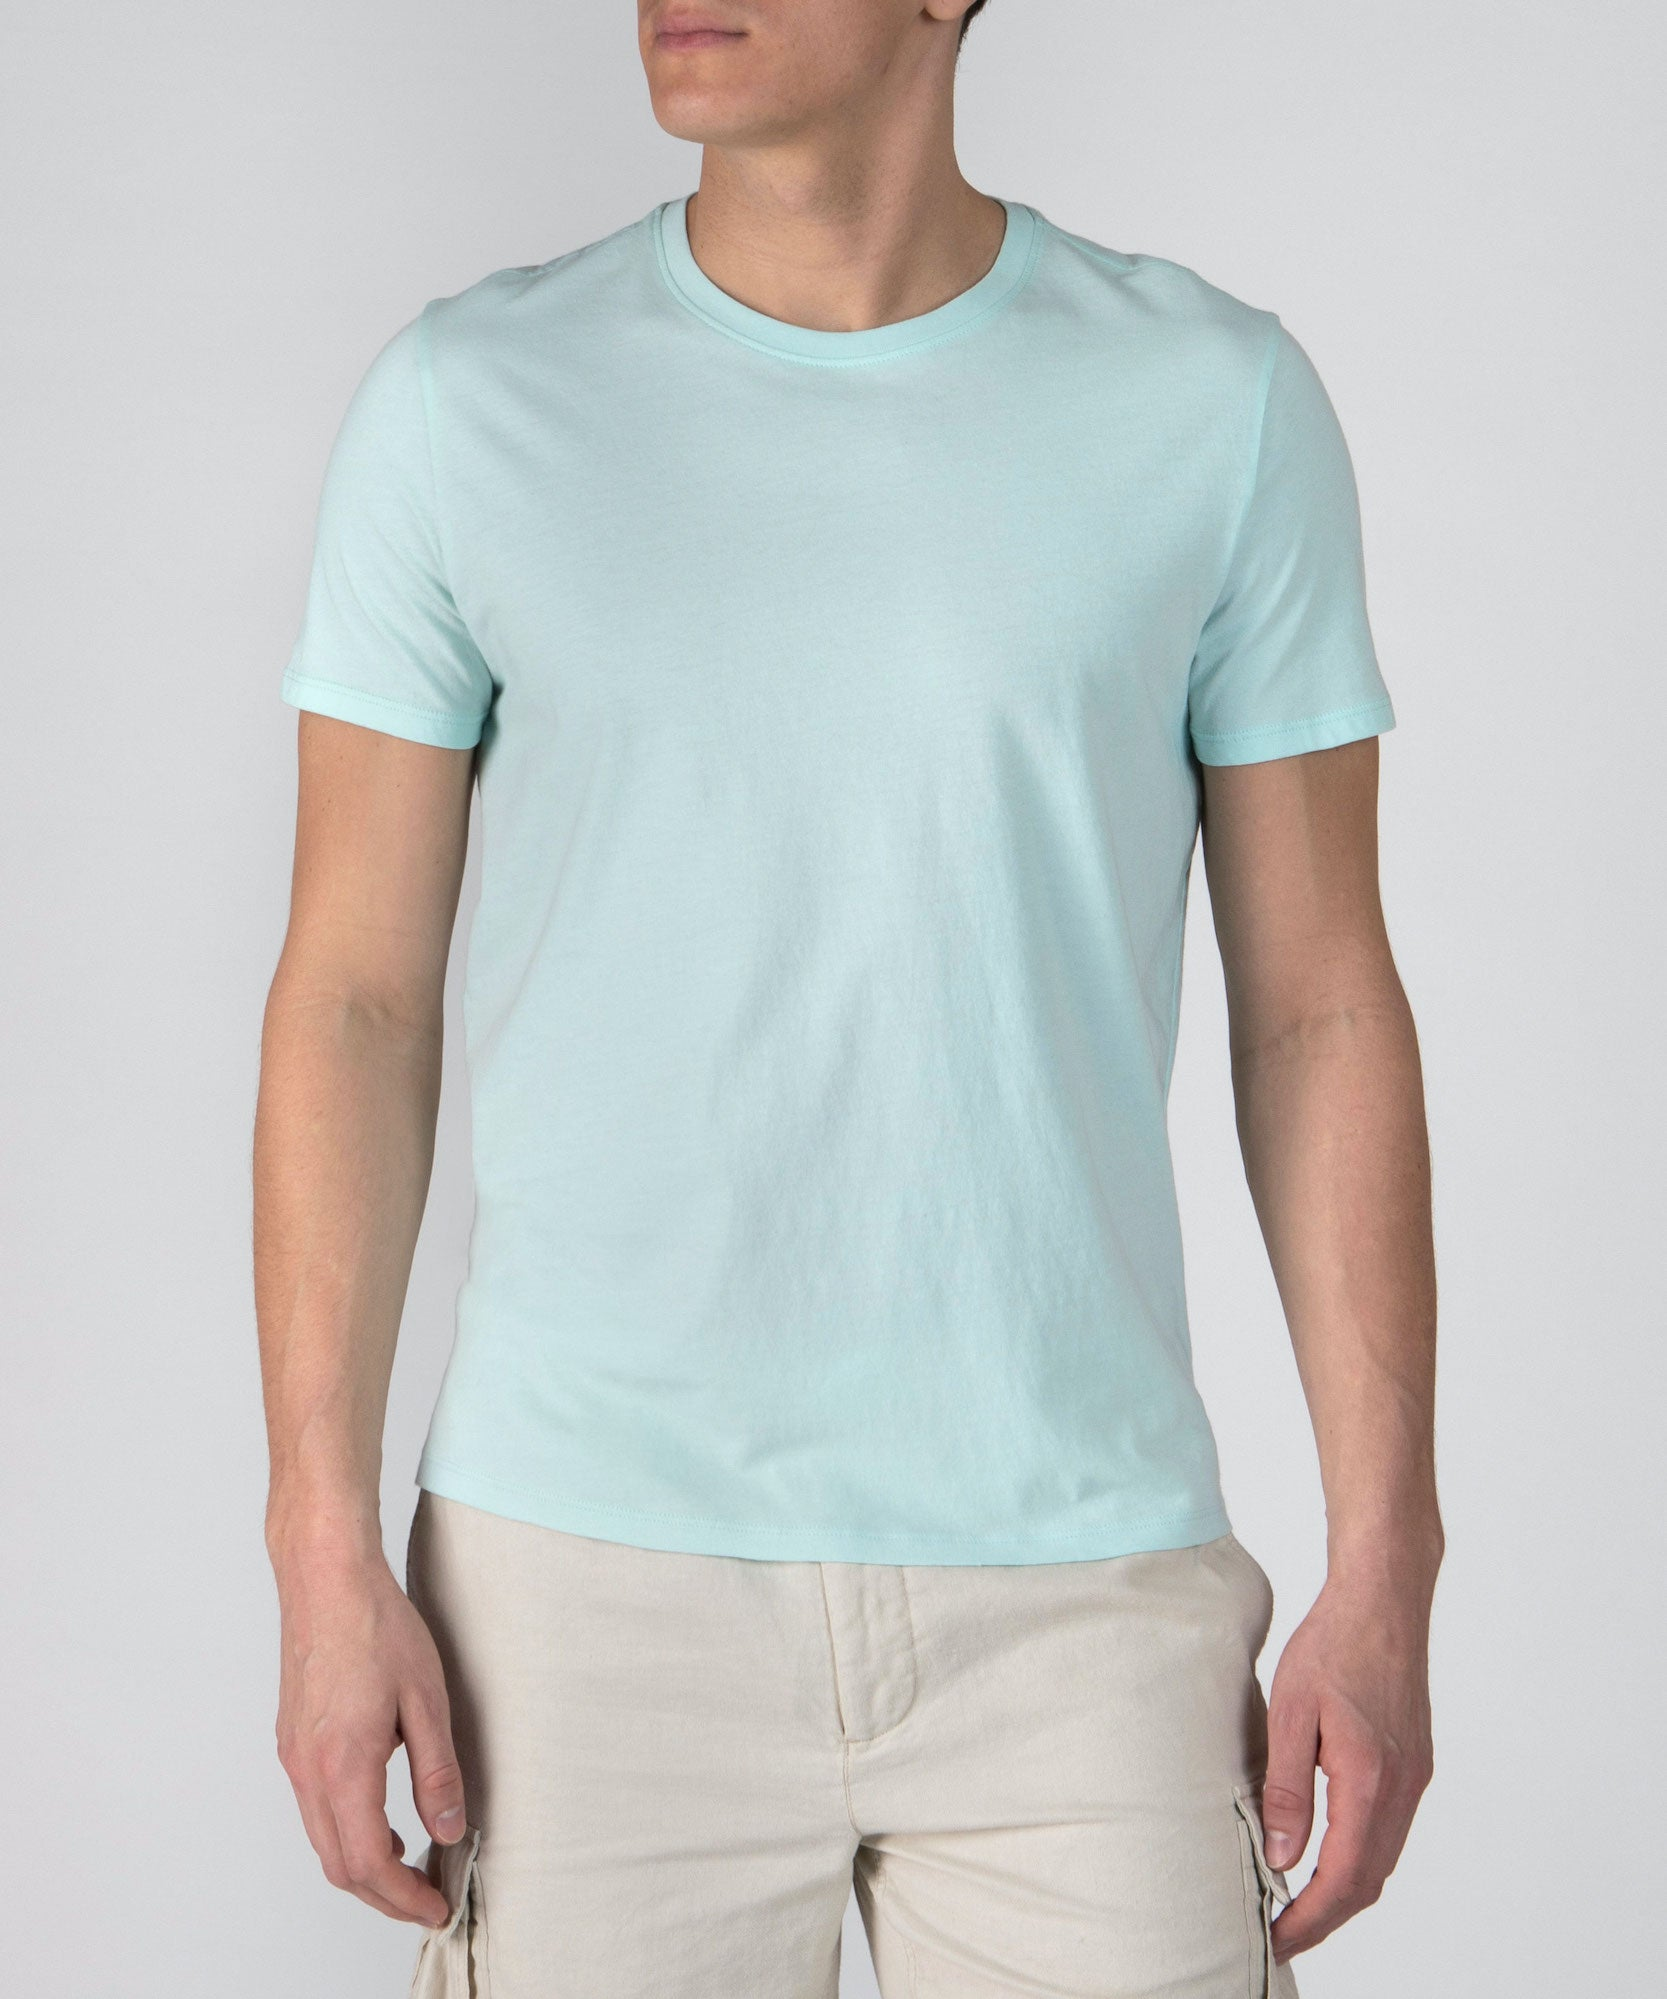 Bleached Aqua Classic Jersey Crew Neck Tee - Men's Cotton Short Sleeve T-shirt by ATM Anthony Thomas Melillo